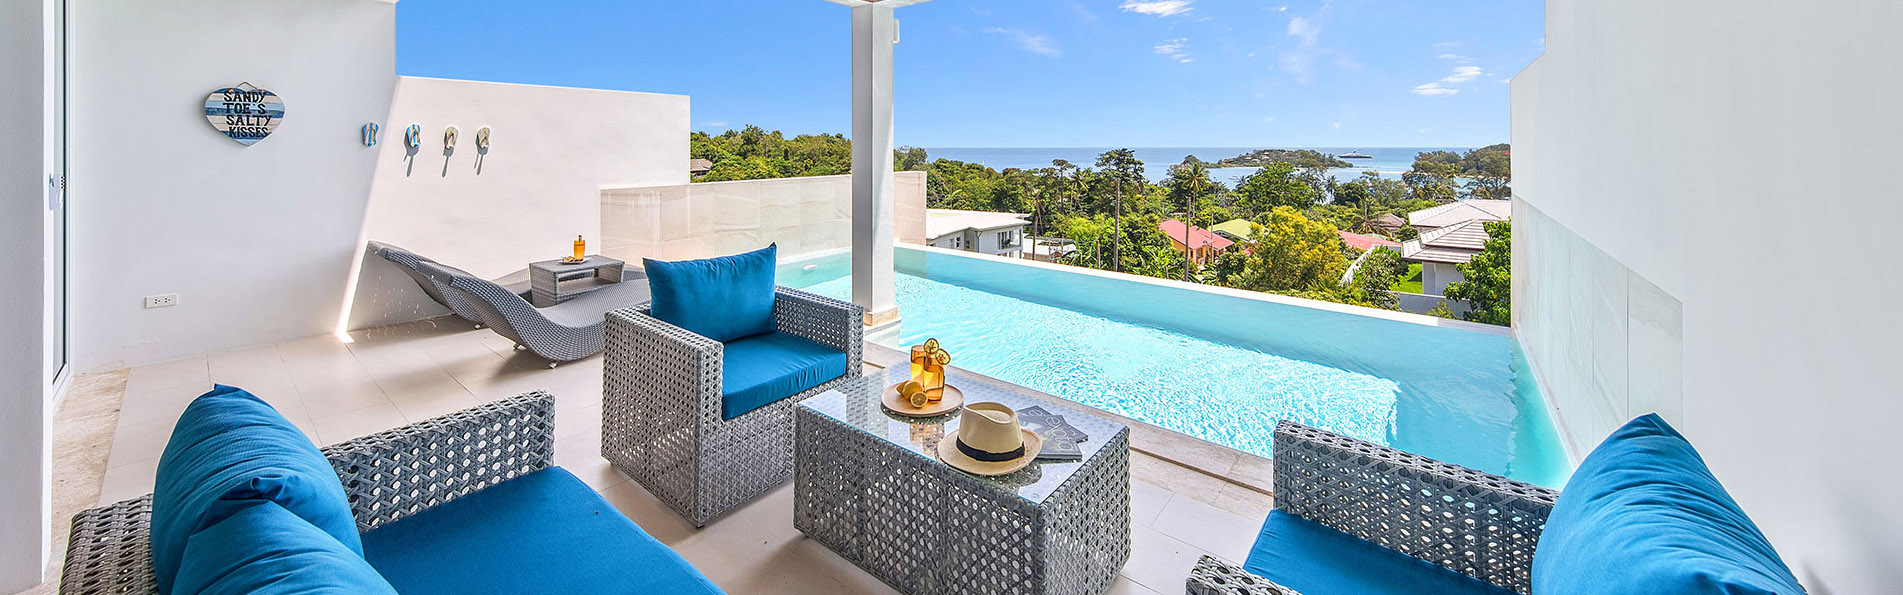 Detached-villa with sea view for rent in Koh Samui, Thailand.